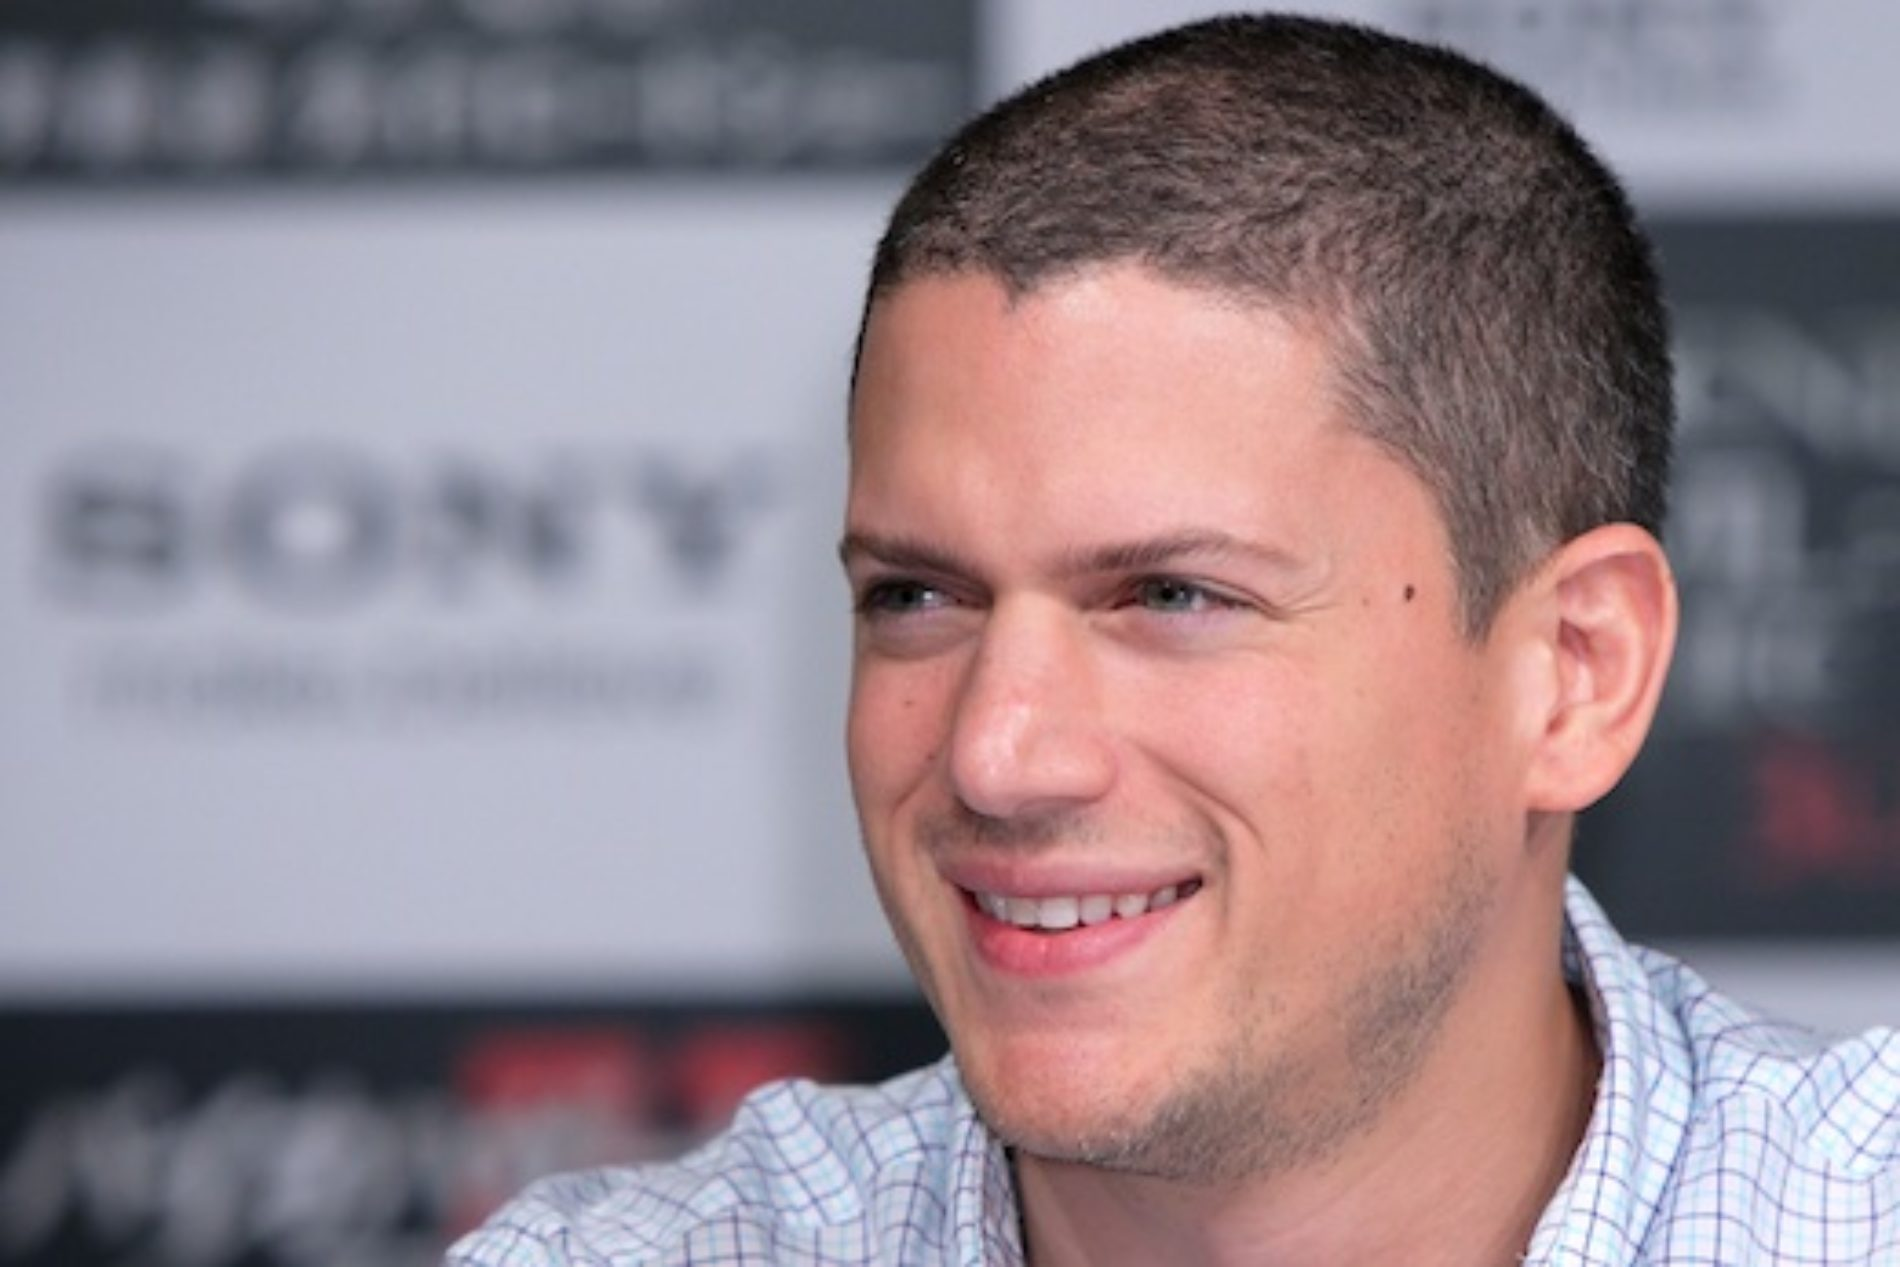 """I'm A Queer Man Of Color, And Some Things Are Going To Piss Me Off."" – Wentworth Miller"